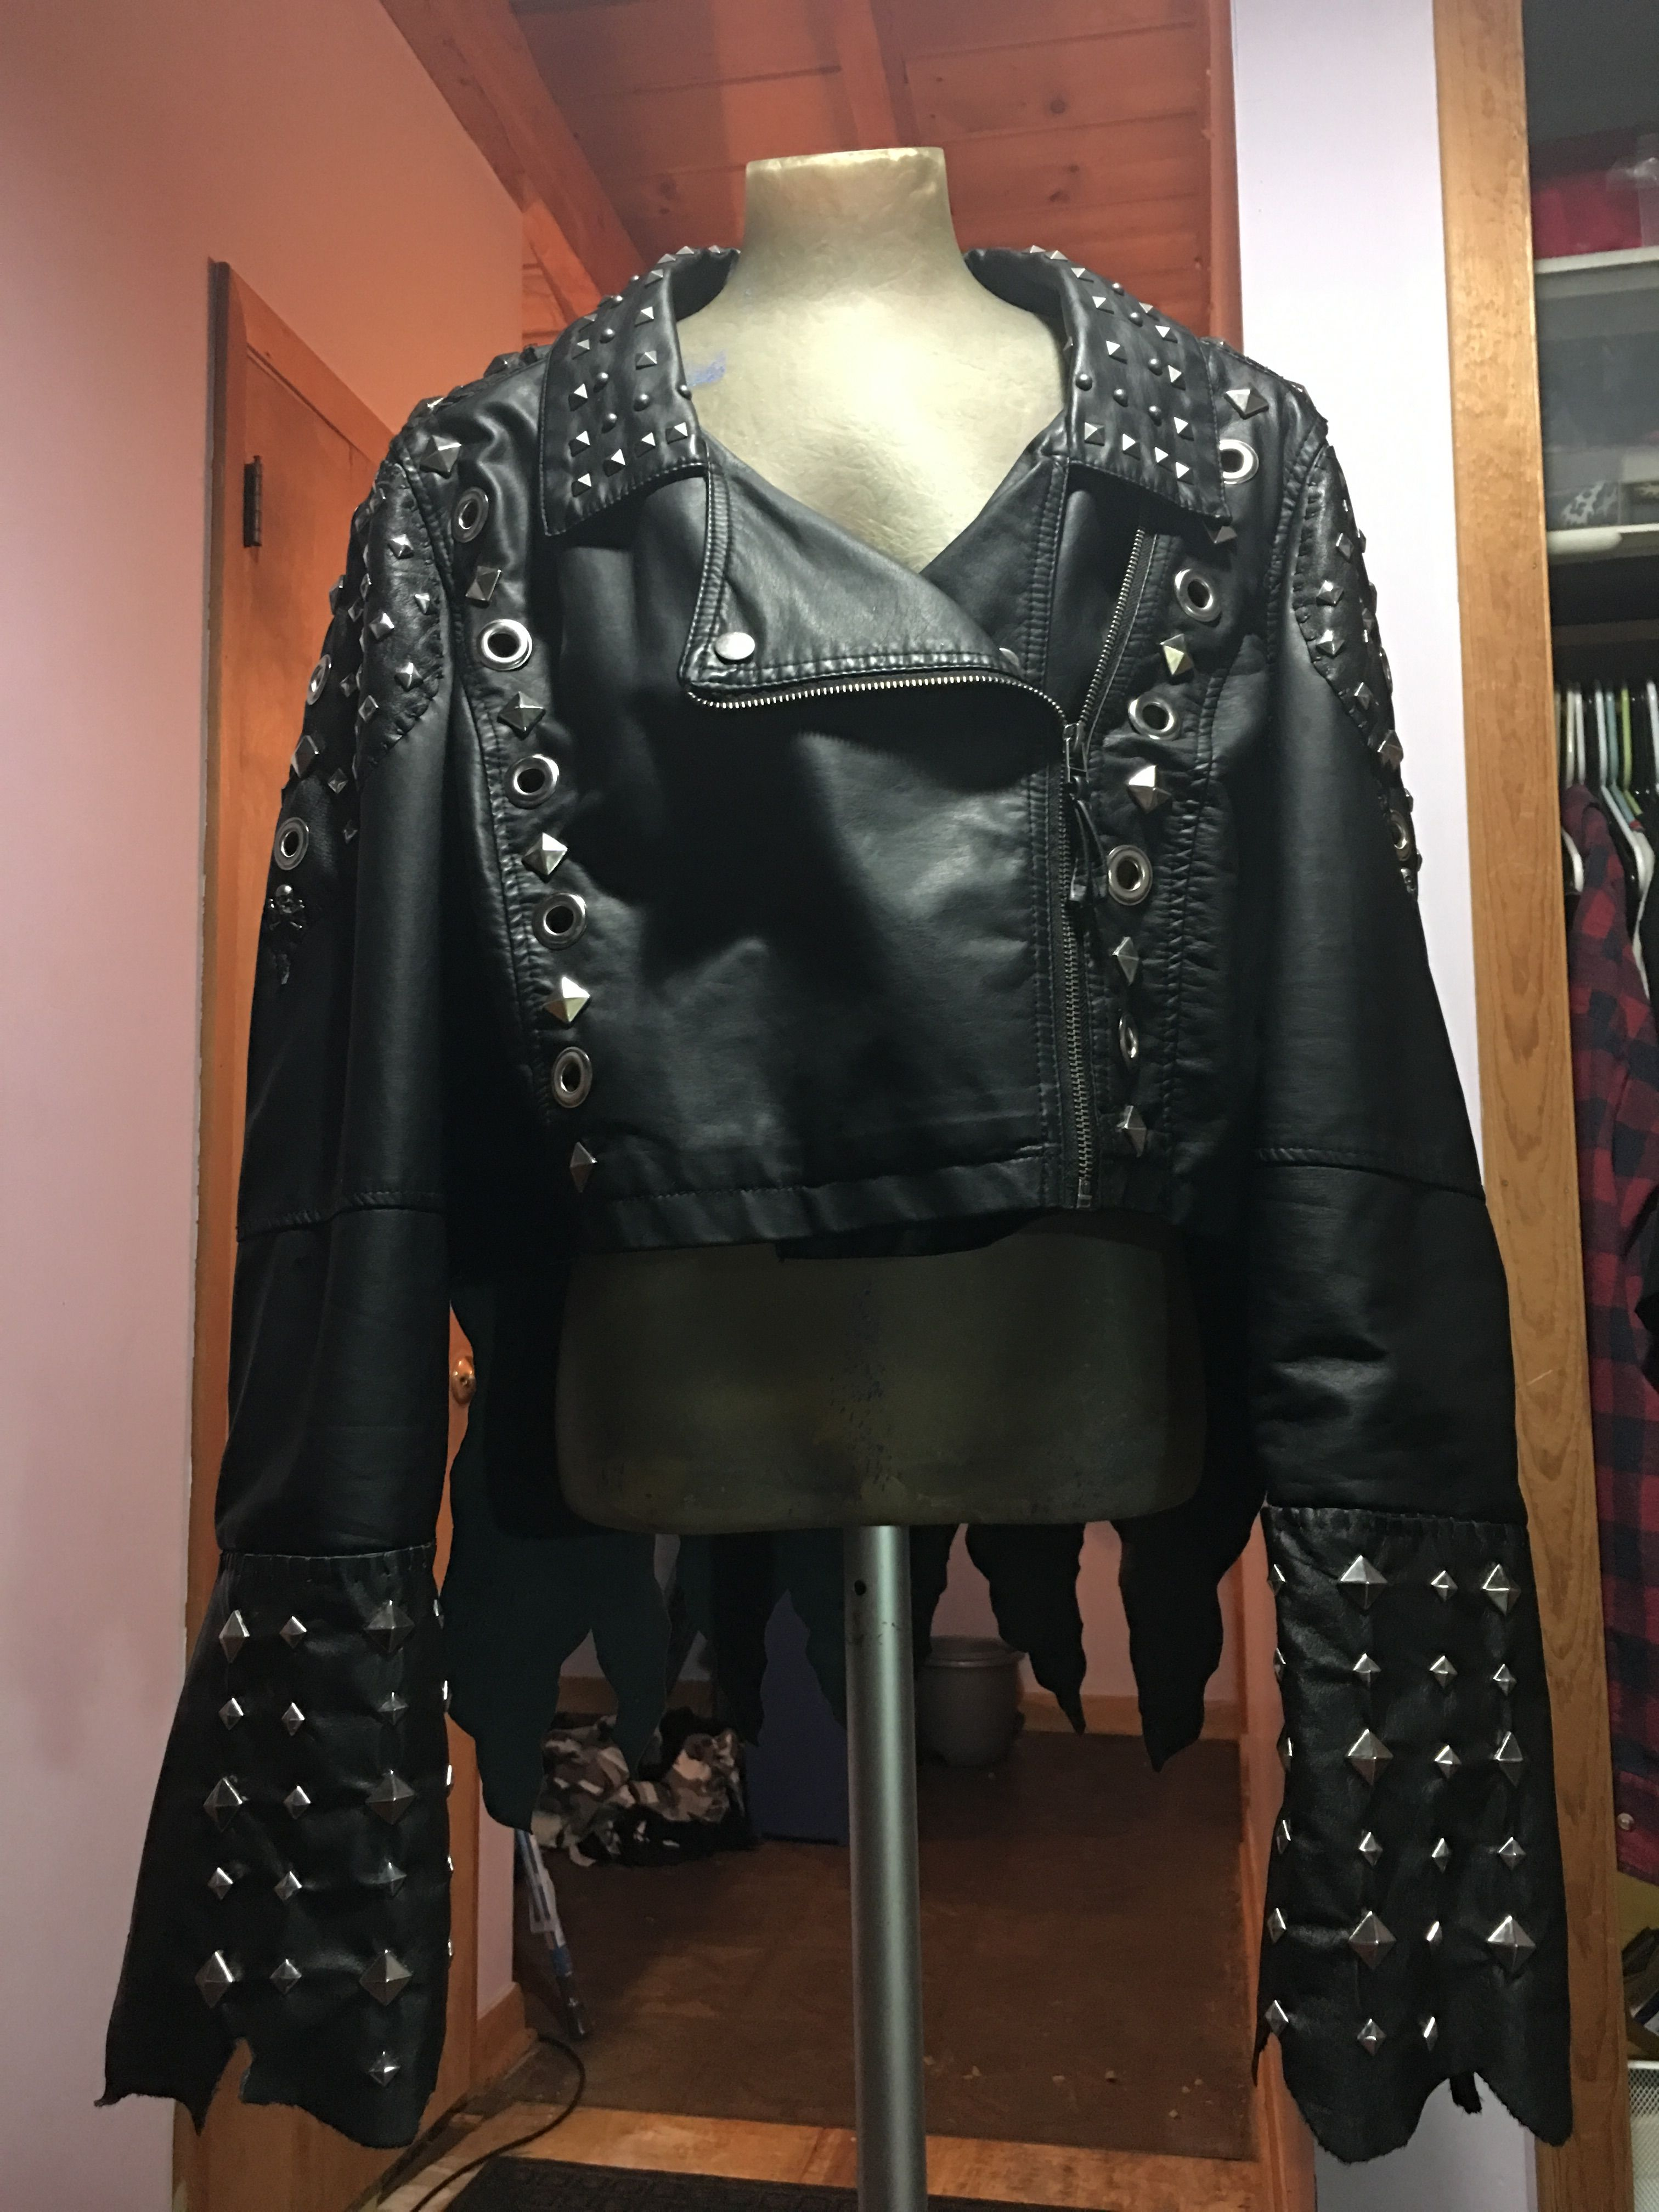 Custom Battle Vest Rocker Spiked Viking Jacket By Mourningstar Clothing Clothes Outfits Fashion [ 4032 x 3024 Pixel ]